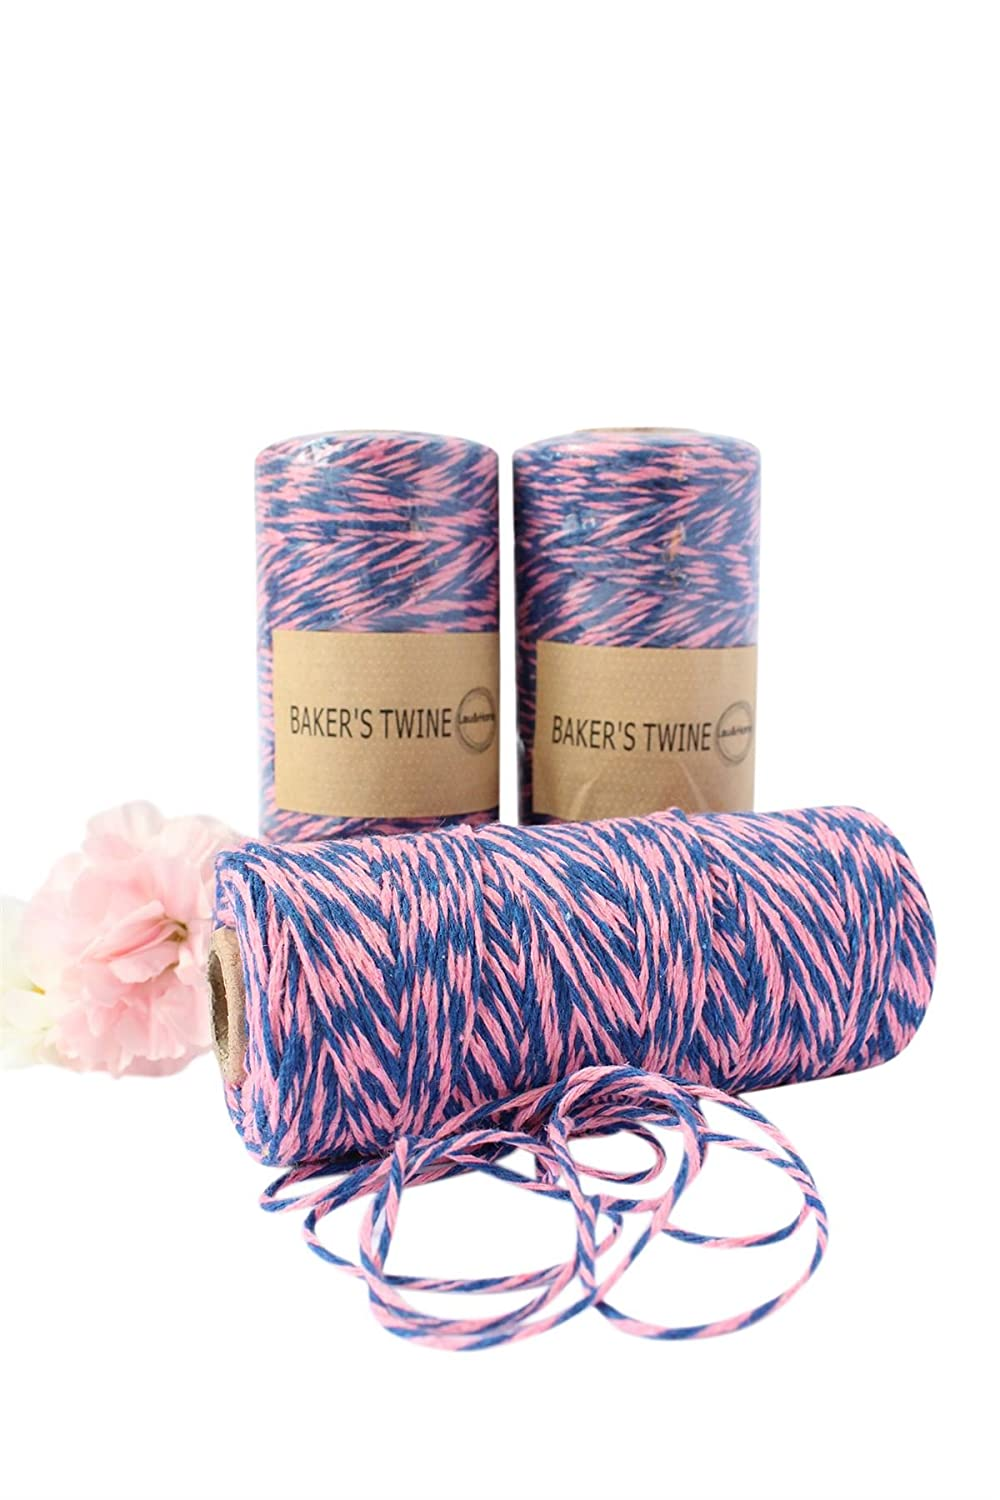 135 Meter Length Spool // Roll 8ply Cotton Bakers Divine butchers Twine Craft String Brown+White